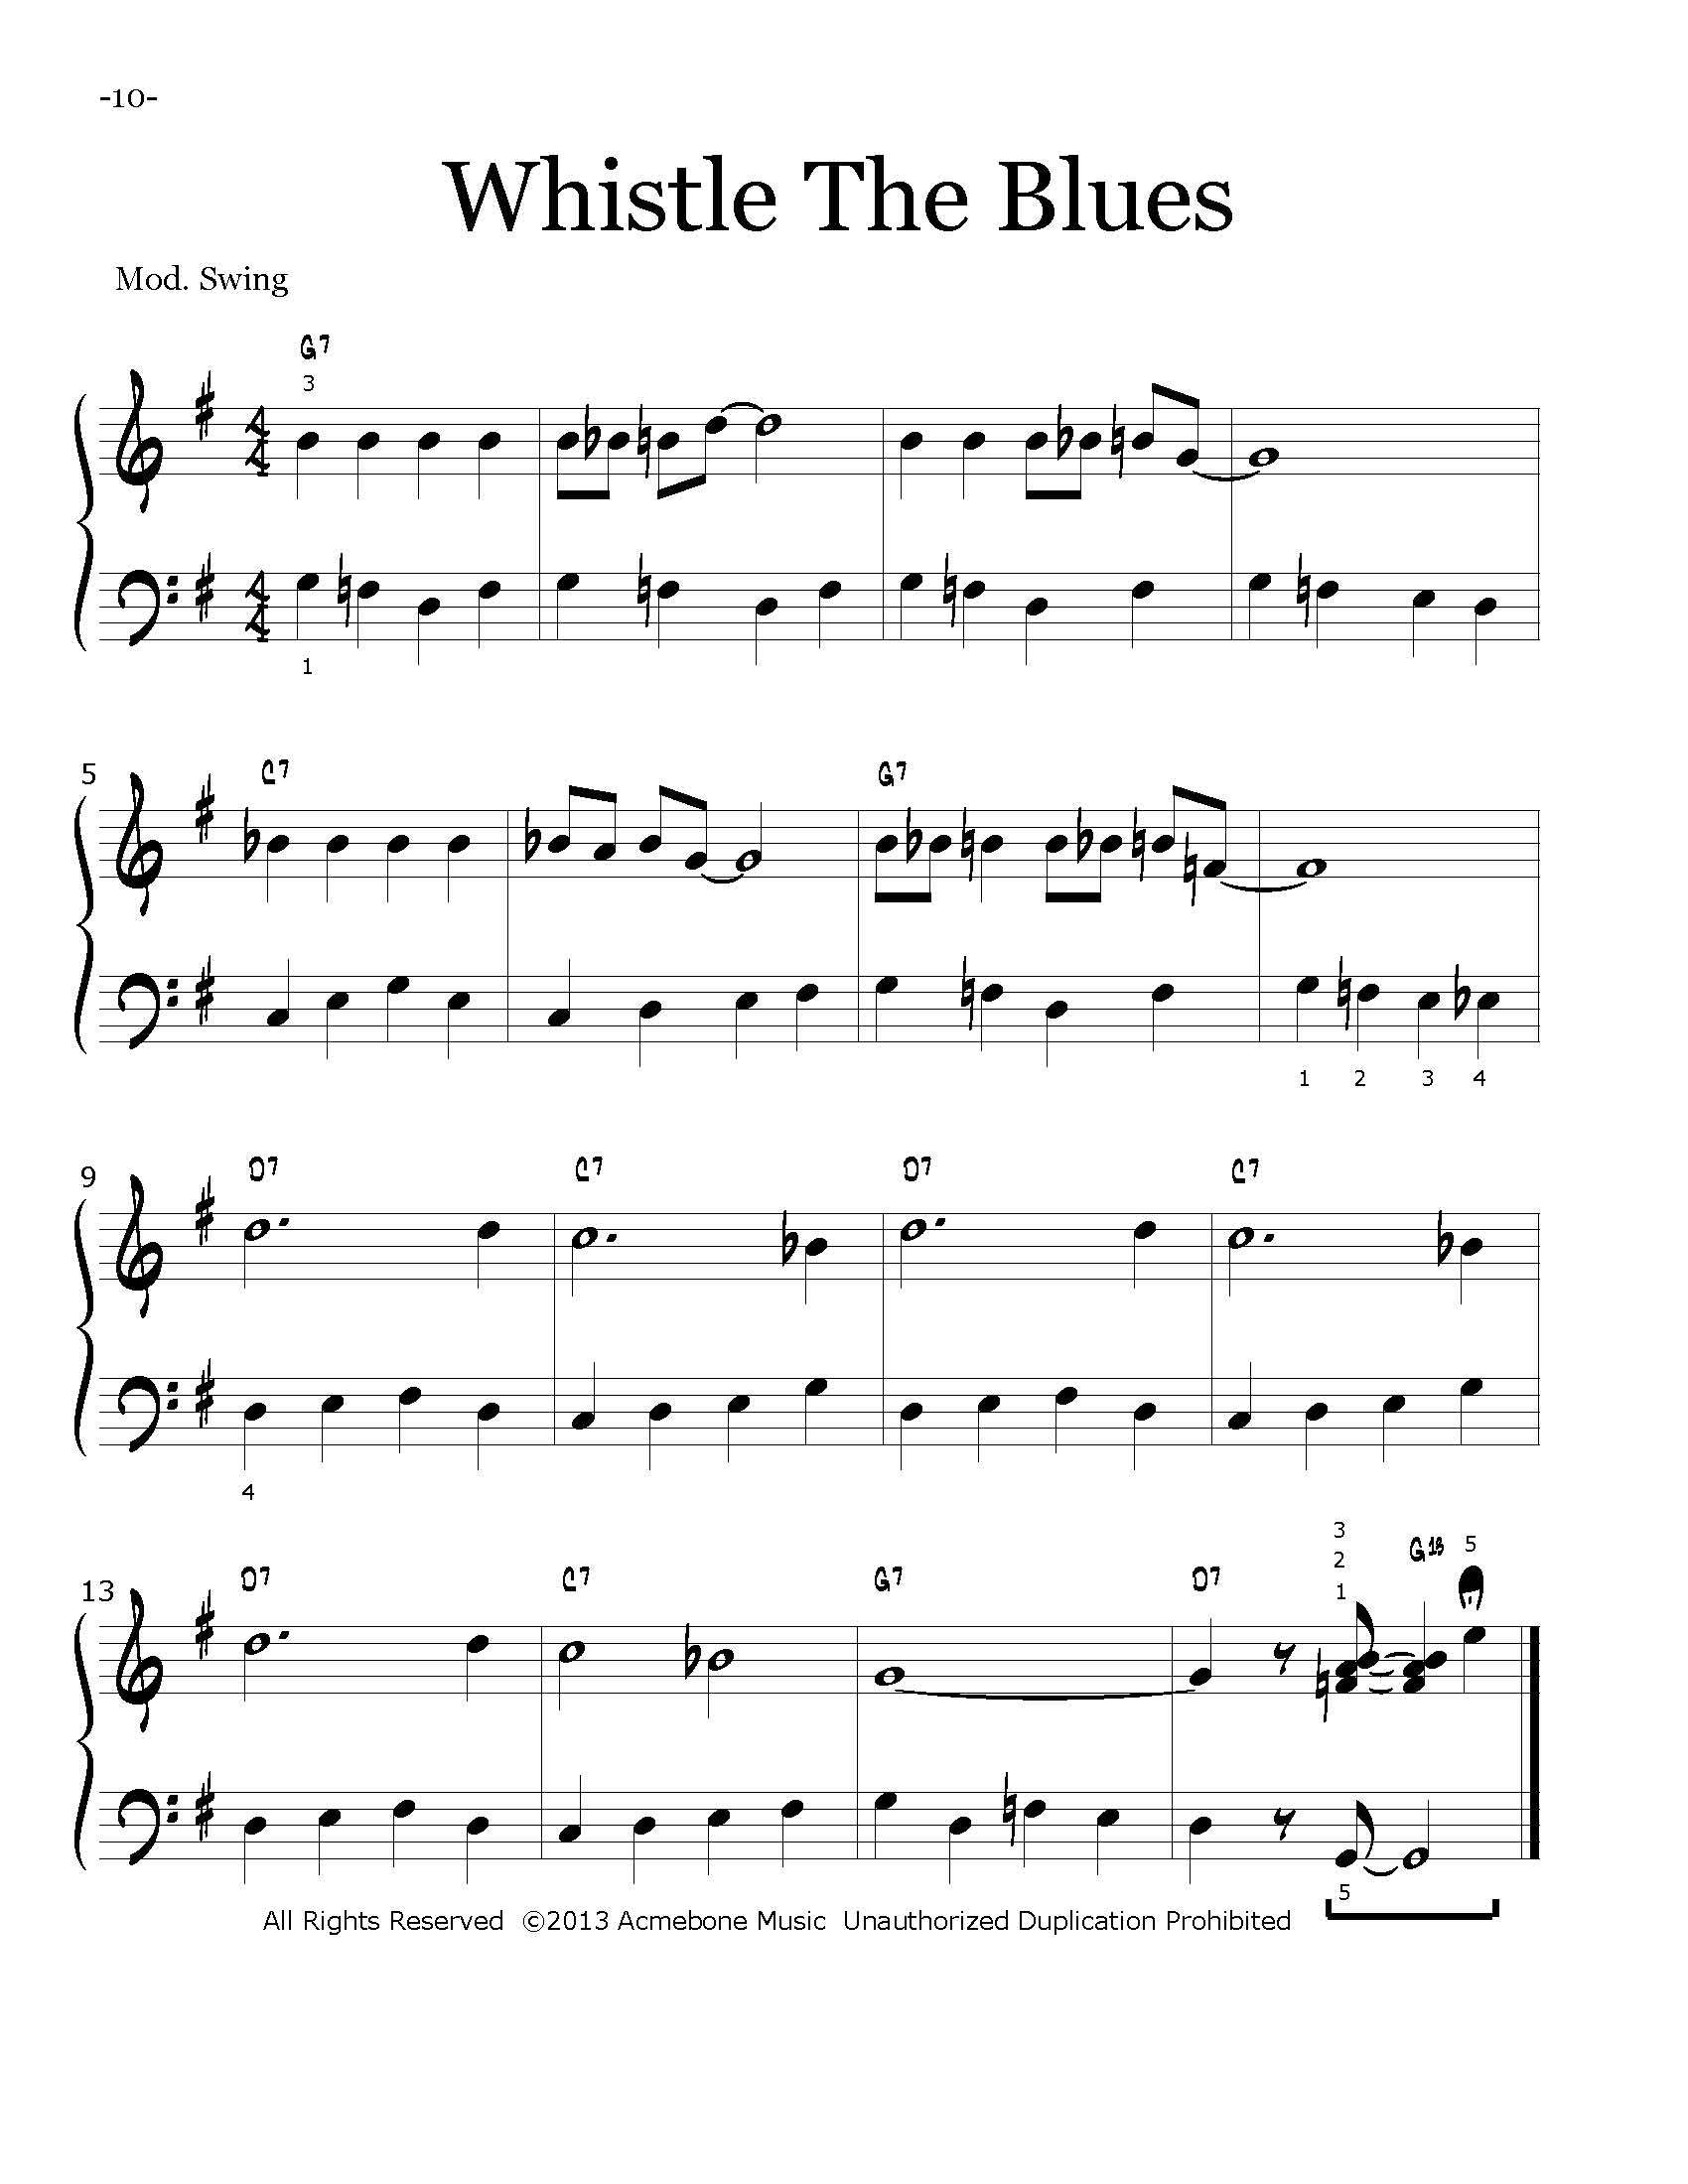 Progressive Jazz Etudes for Piano bk1 for web_Page_11.jpg